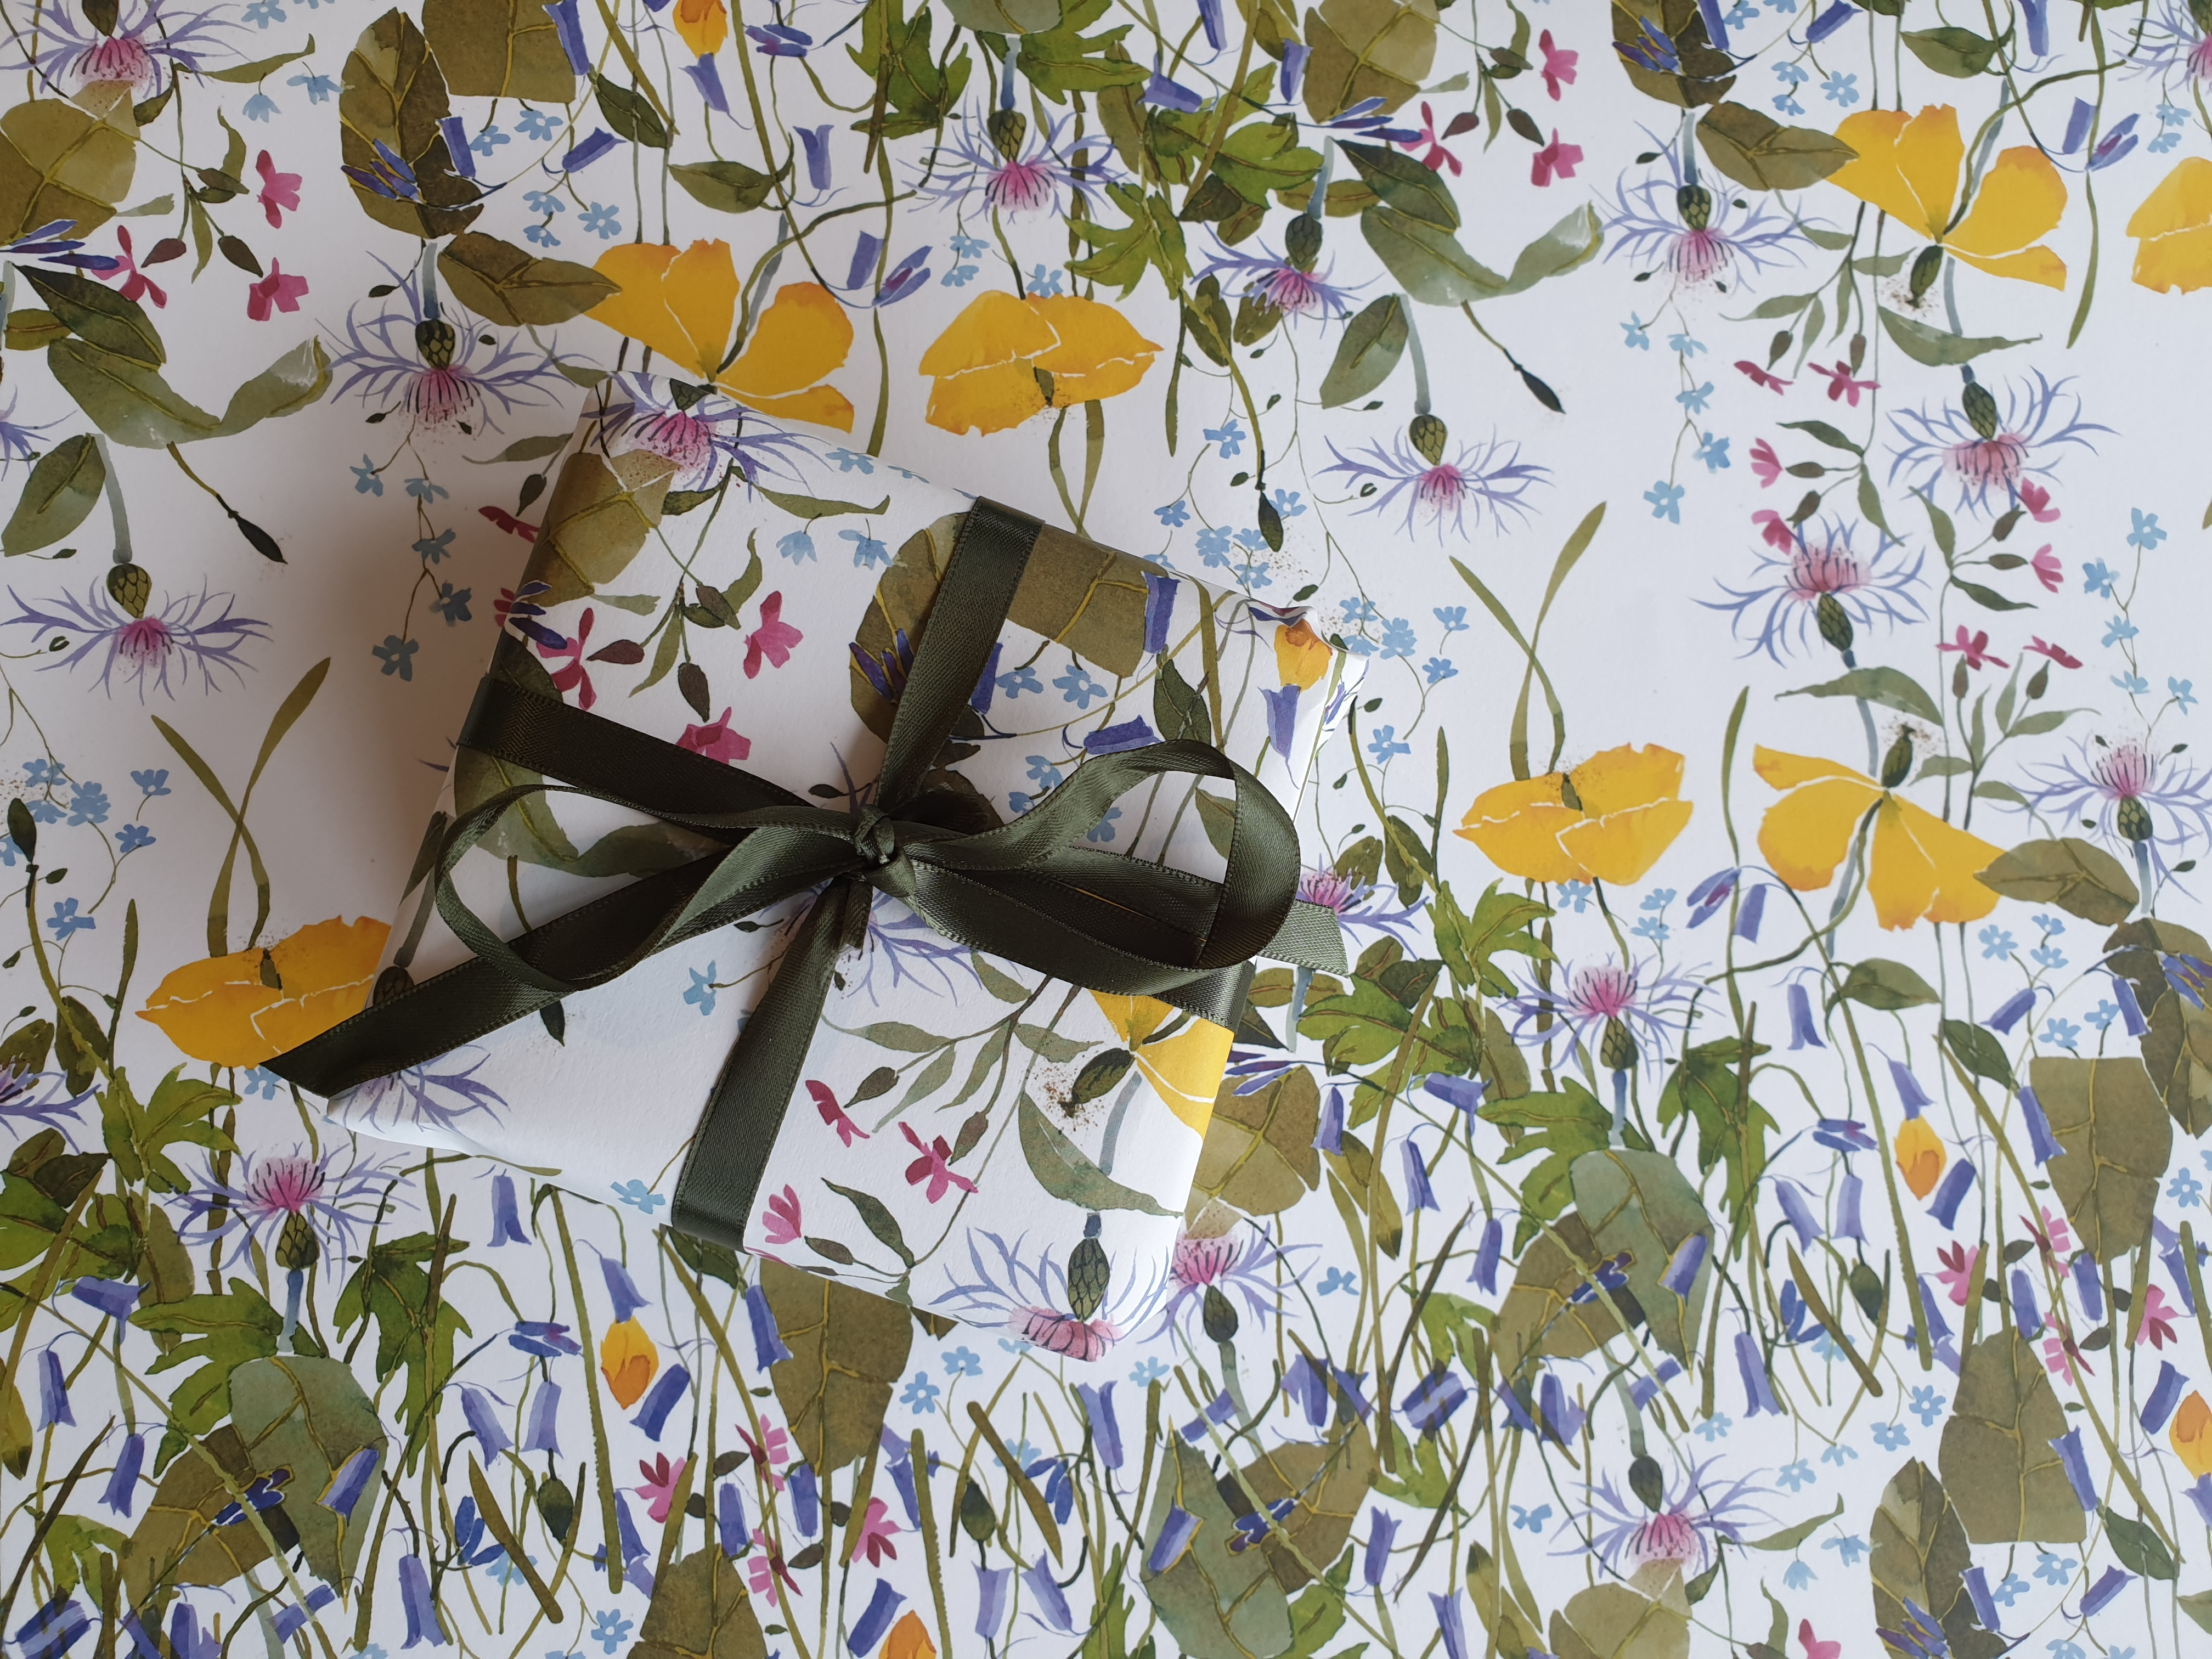 Gift Wrap, Spring Flowers New! image